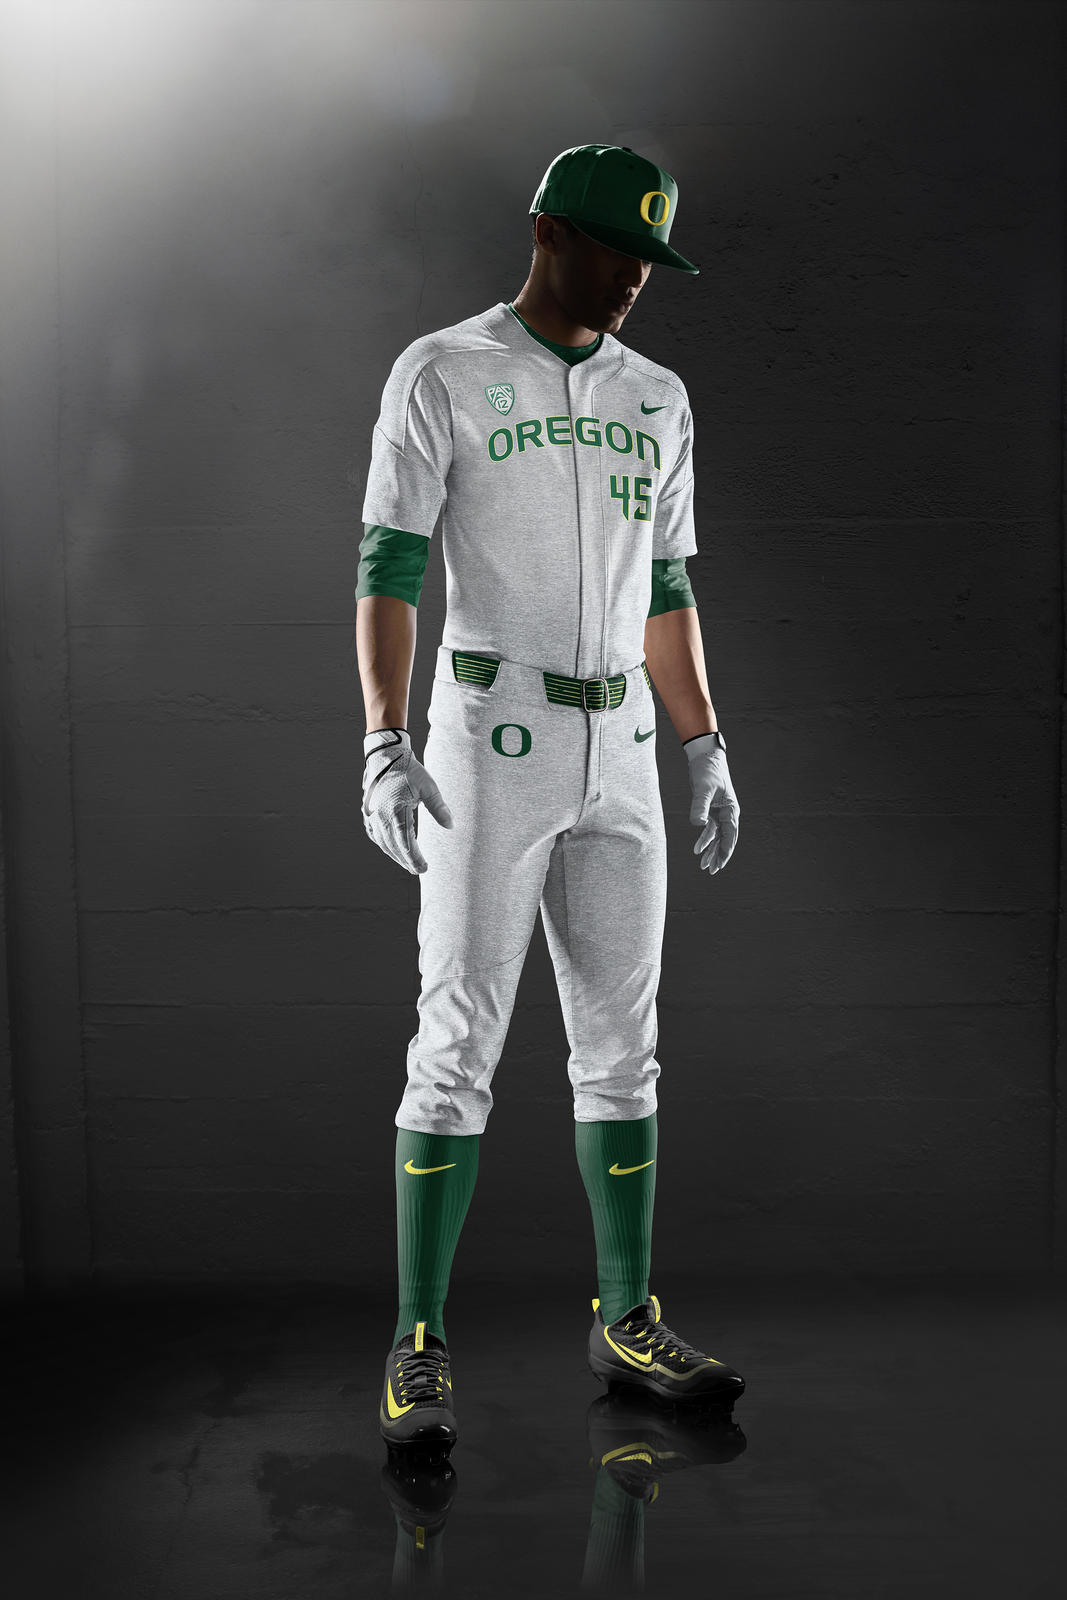 Select Ncaa Baseball Programs Debut Nike Vapor Elite